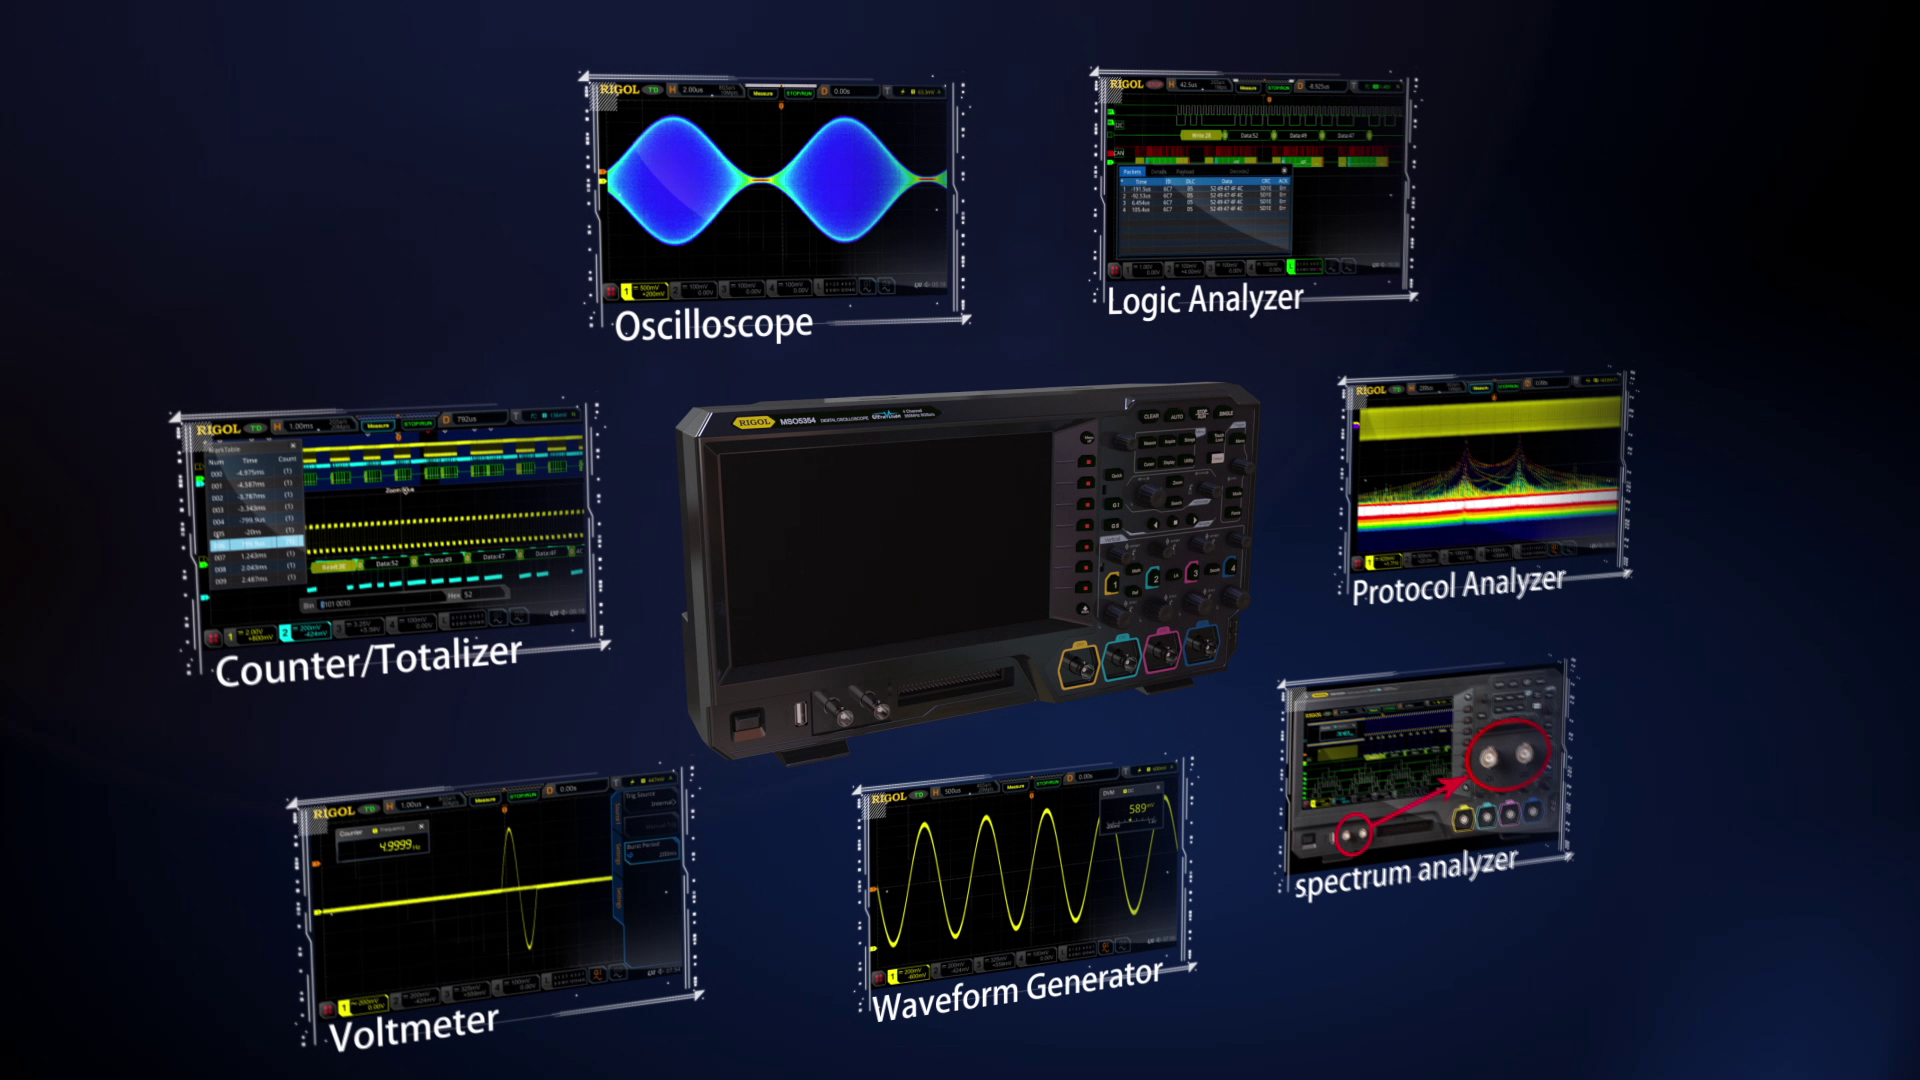 Combine an Oscilloscope, Spectrum Analyzer, Logic Analyzer, Protocol Analyzer, Waveform Generator, Voltmeter, and Counter/Totalizer in one instrument to quickly find answers to your measurement challenges.